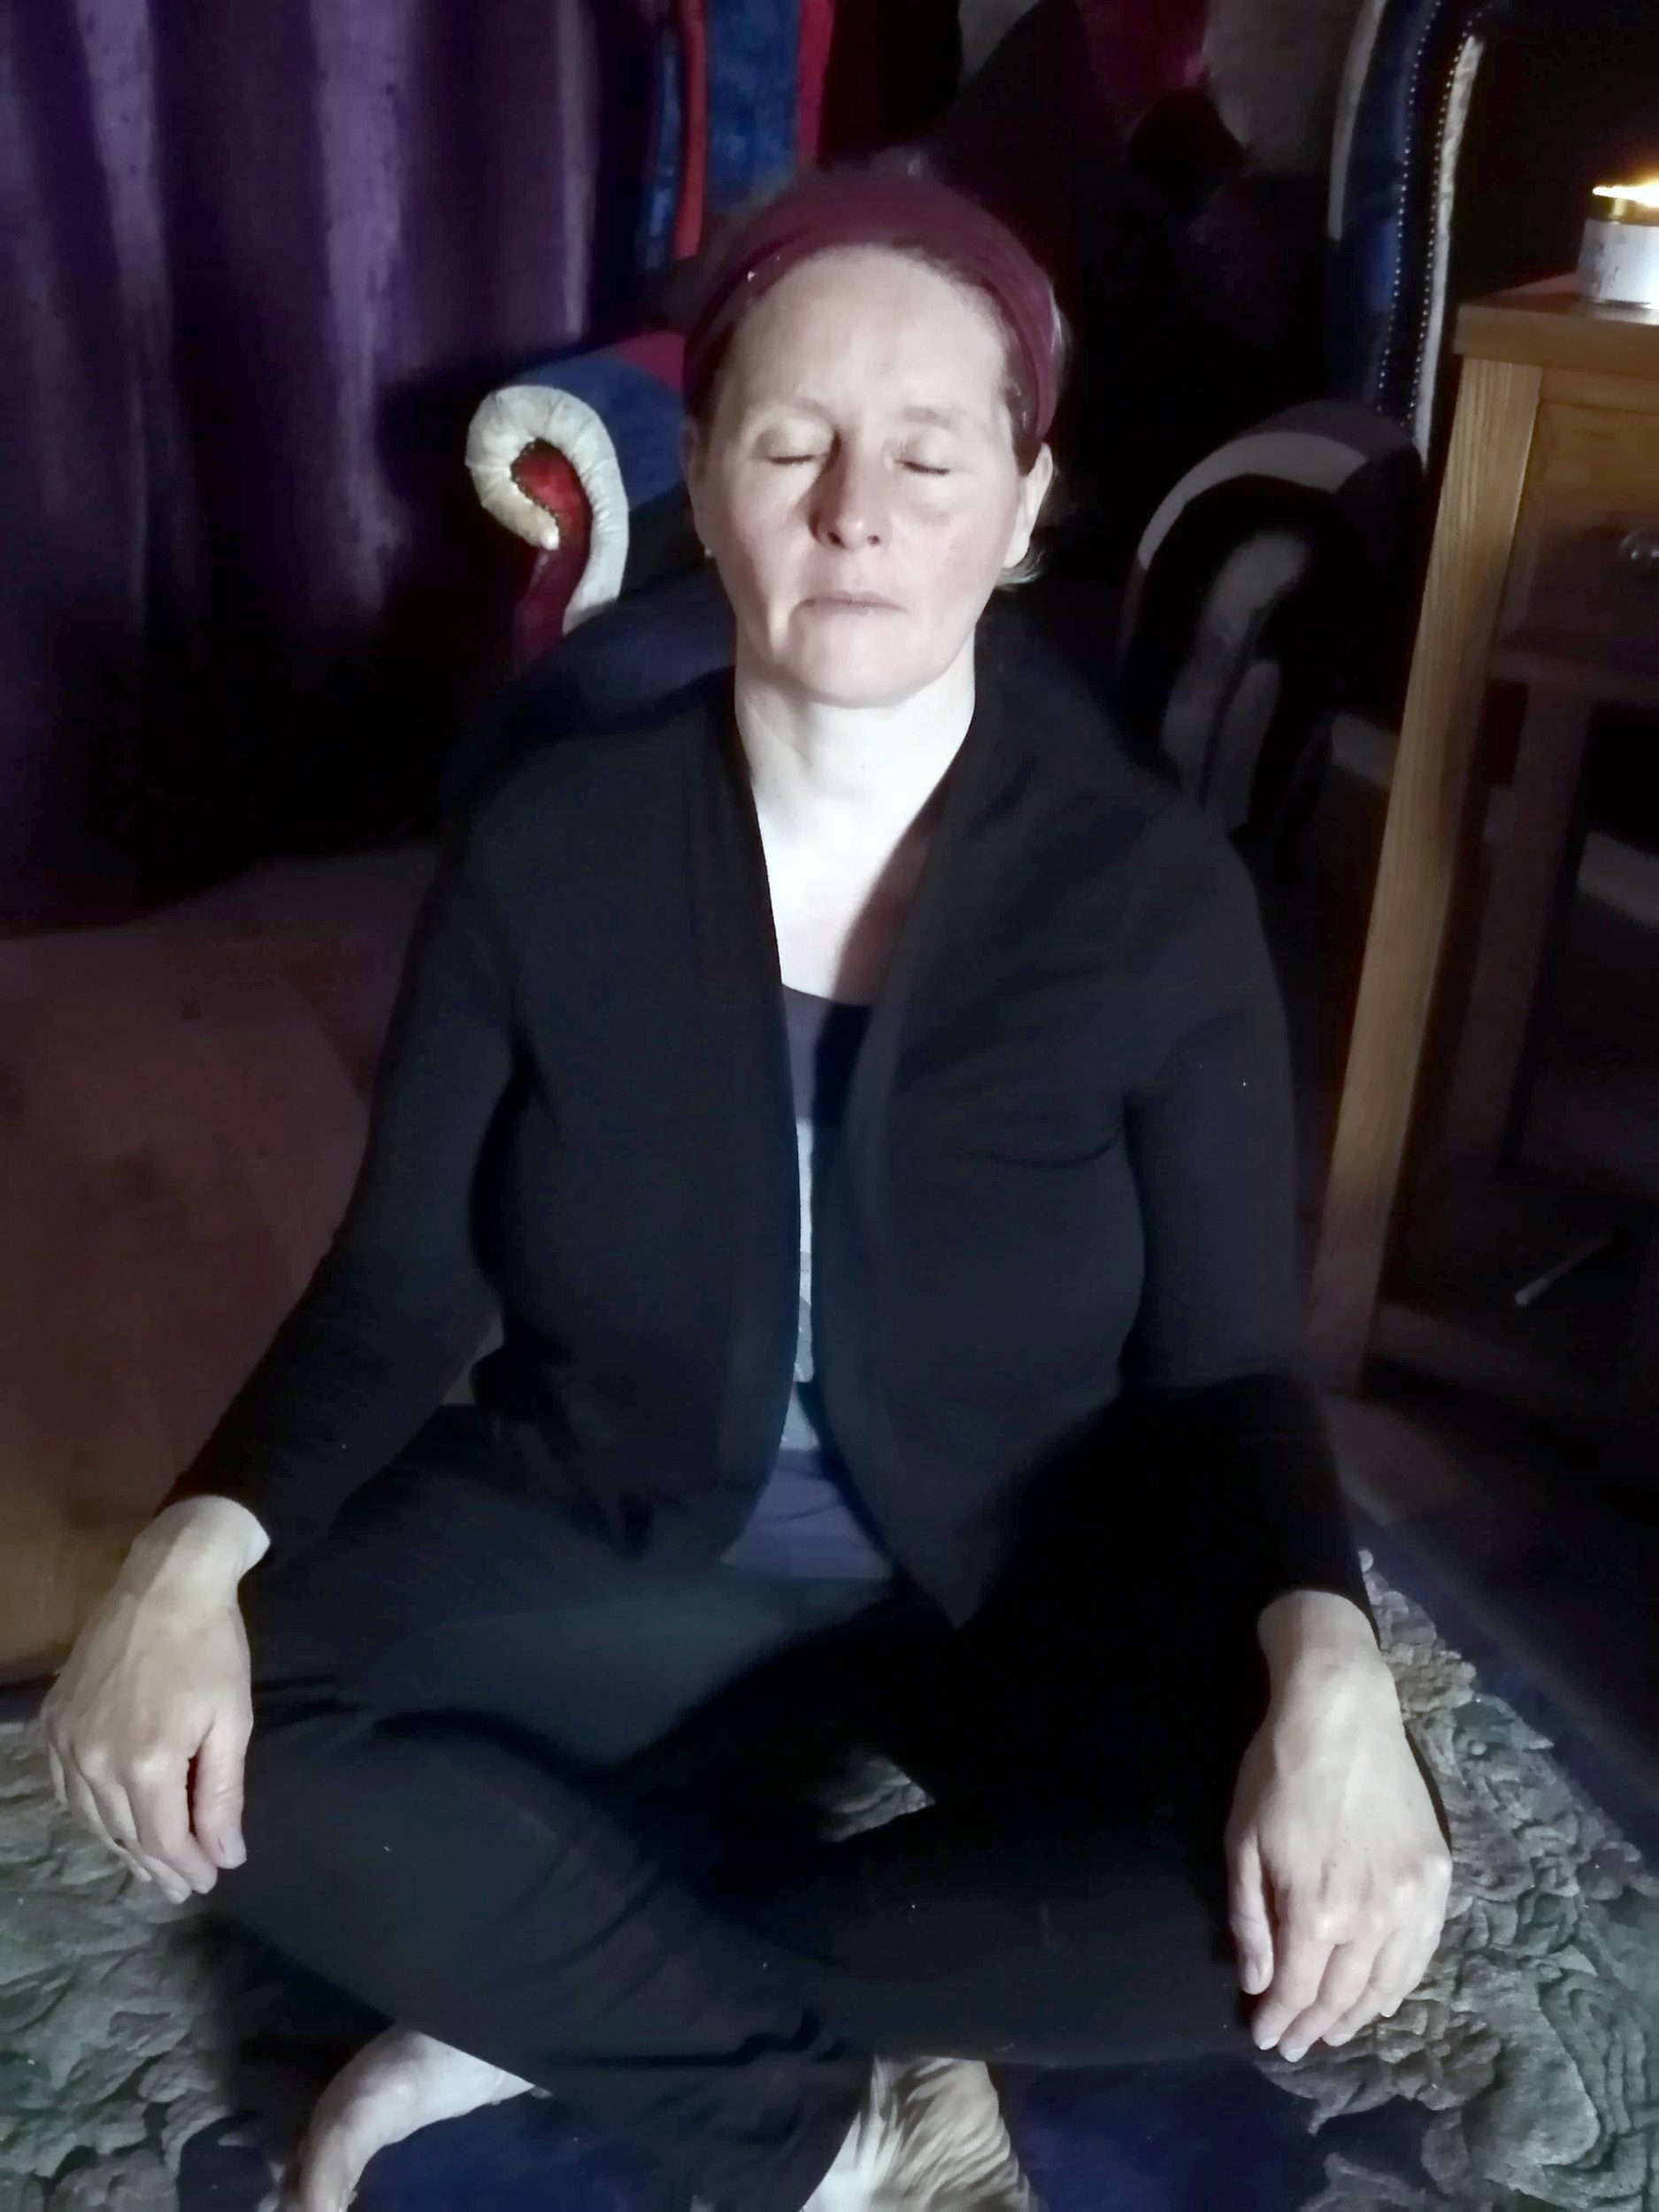 Angela sitting in a mindfulness pose